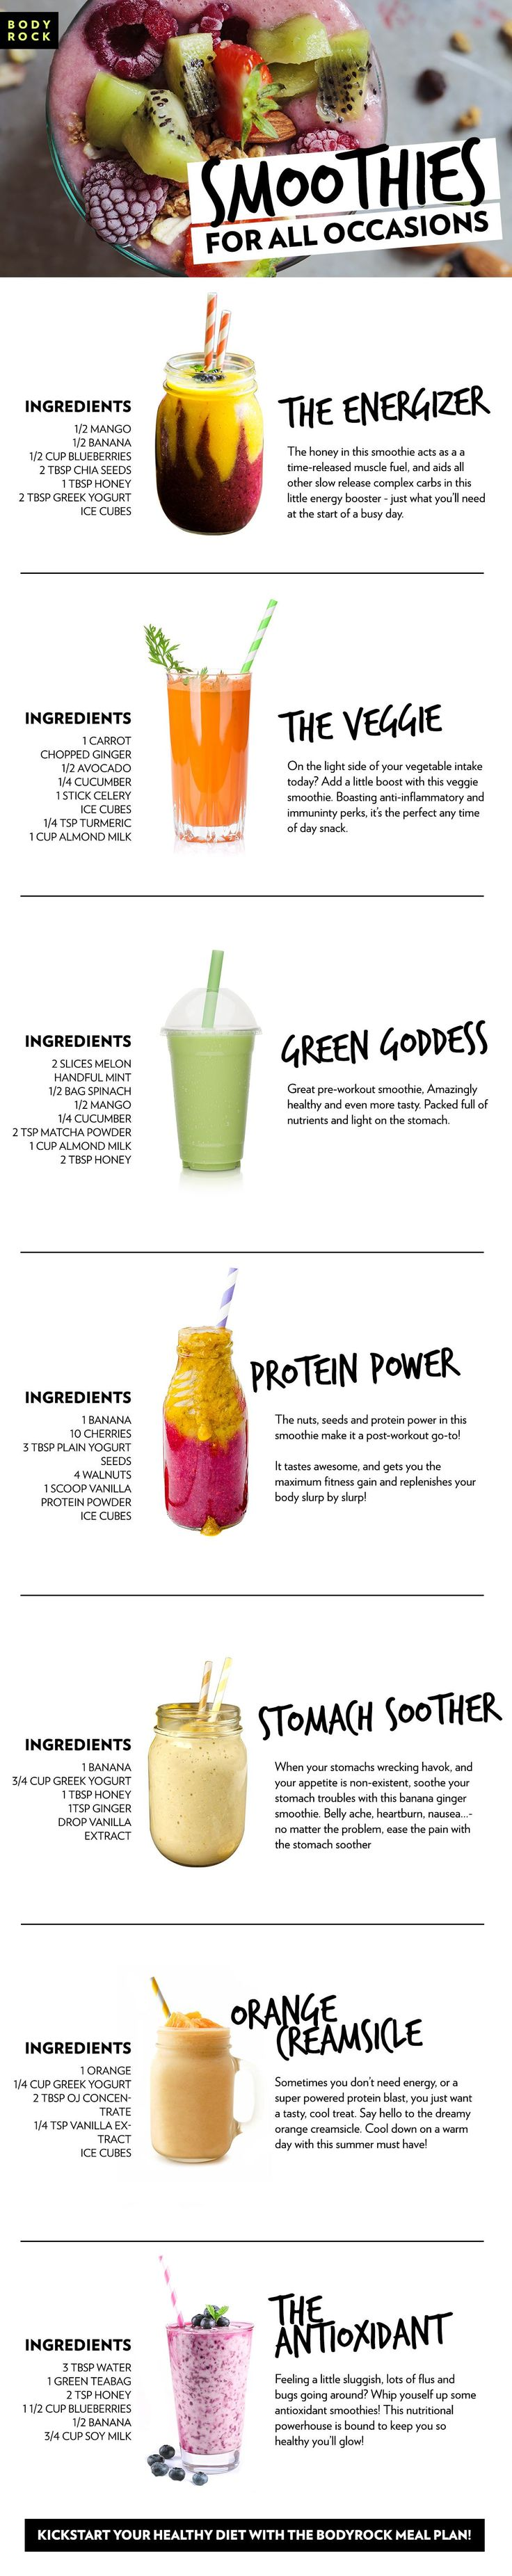 A smoothie for all occasions! Whether you need an energy boost, or a…